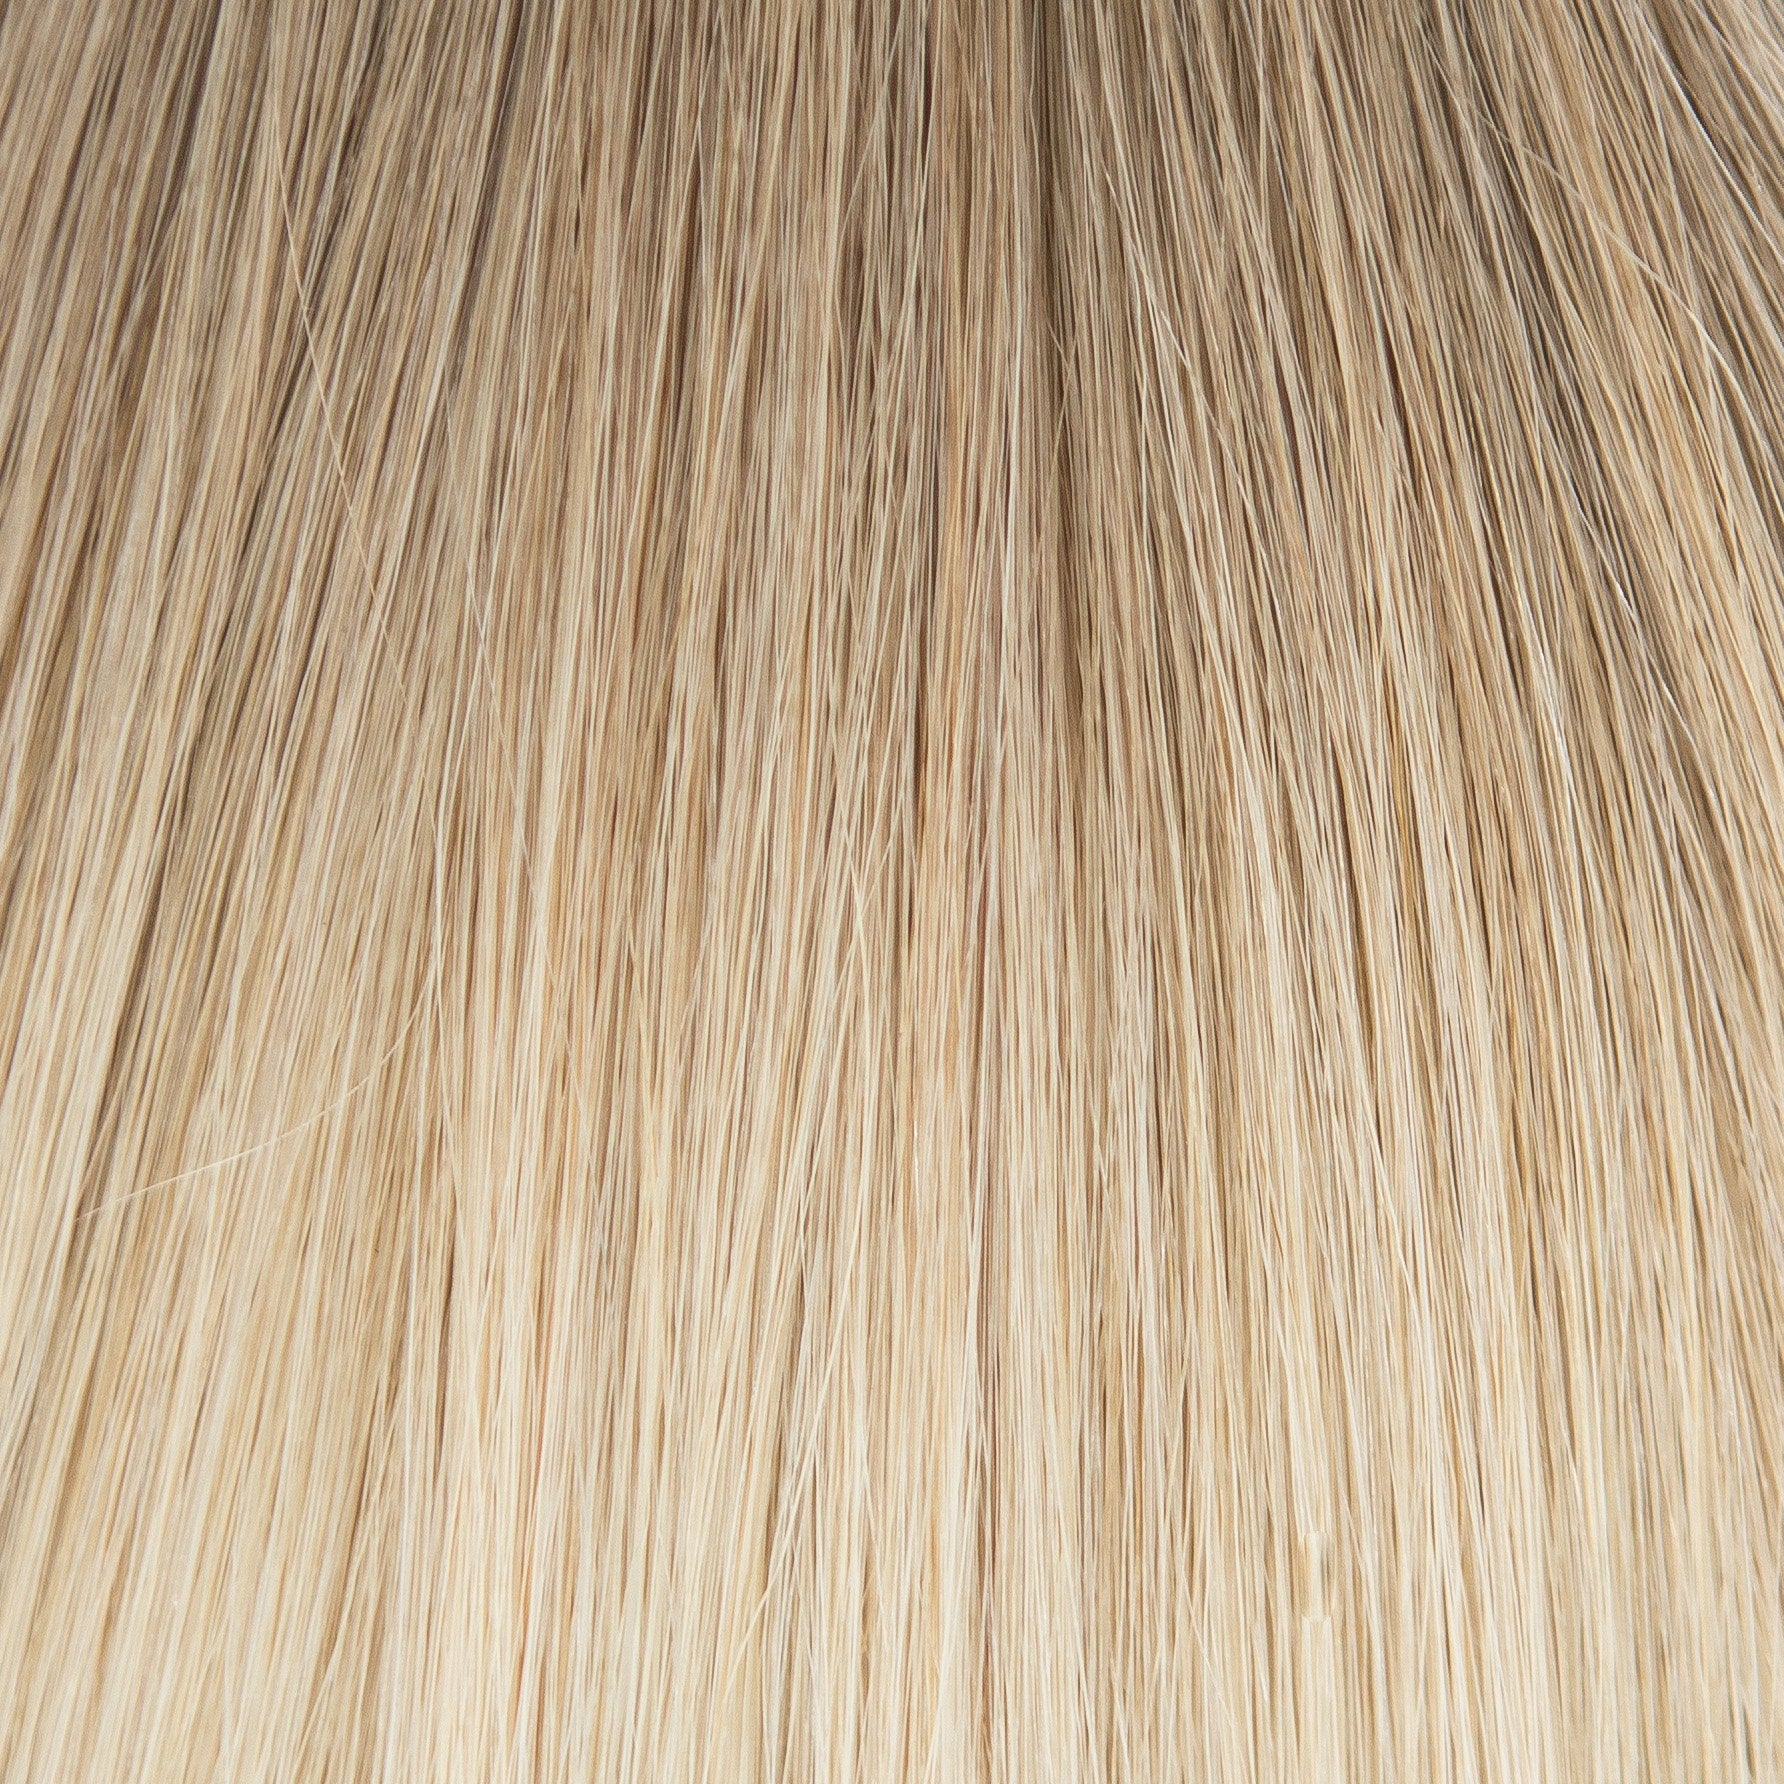 Laced Hair Keratin Bond Extensions Rooted #8/60